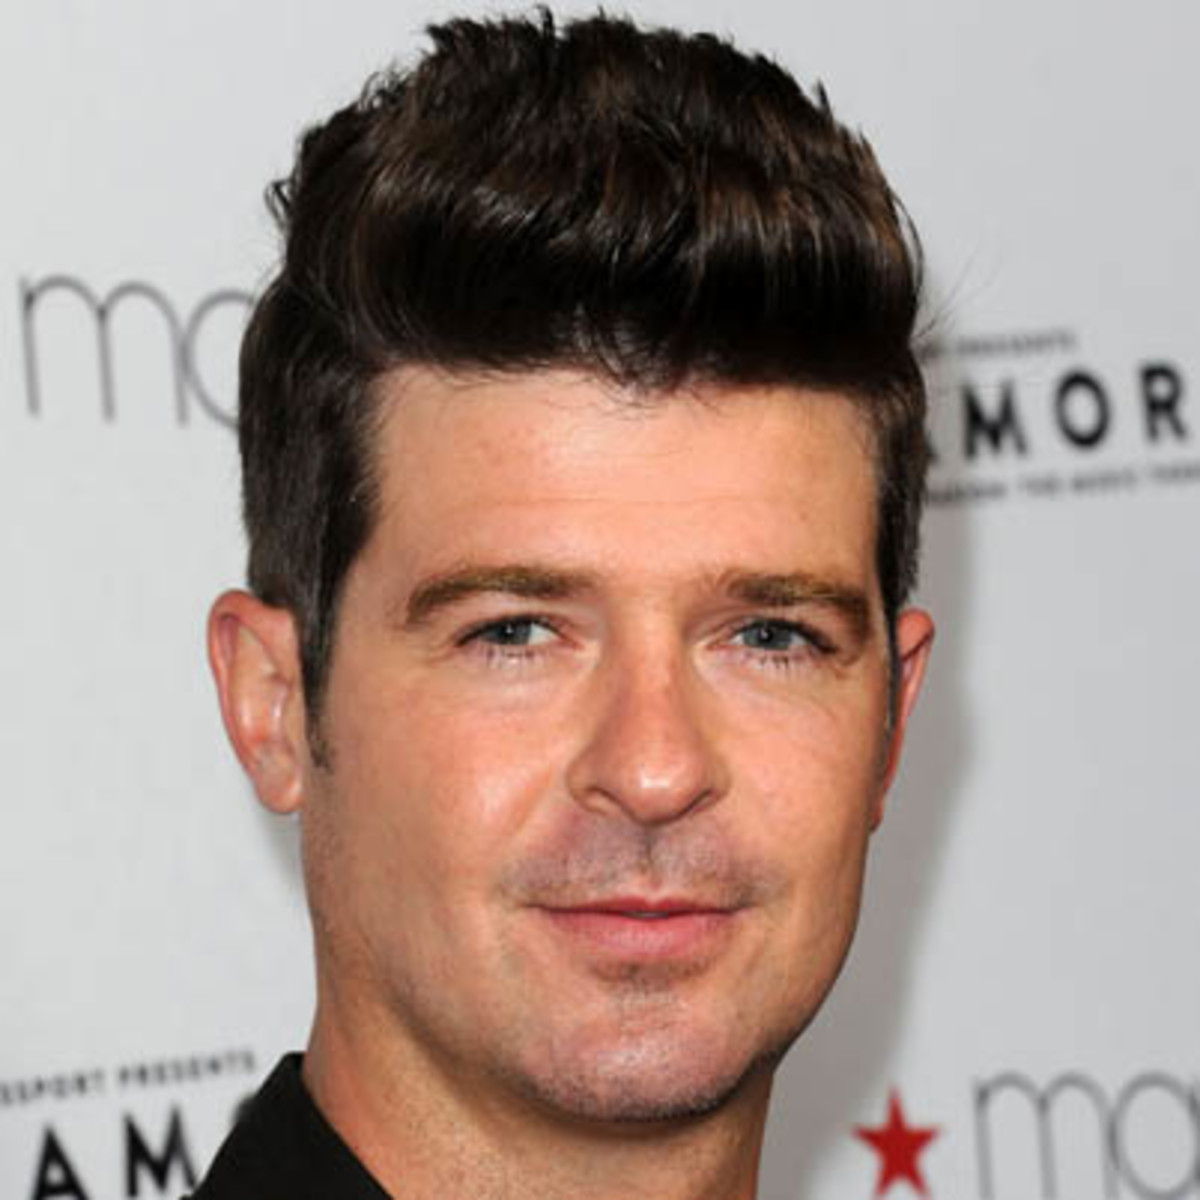 Robin thicke singer songwriter biography nvjuhfo Image collections